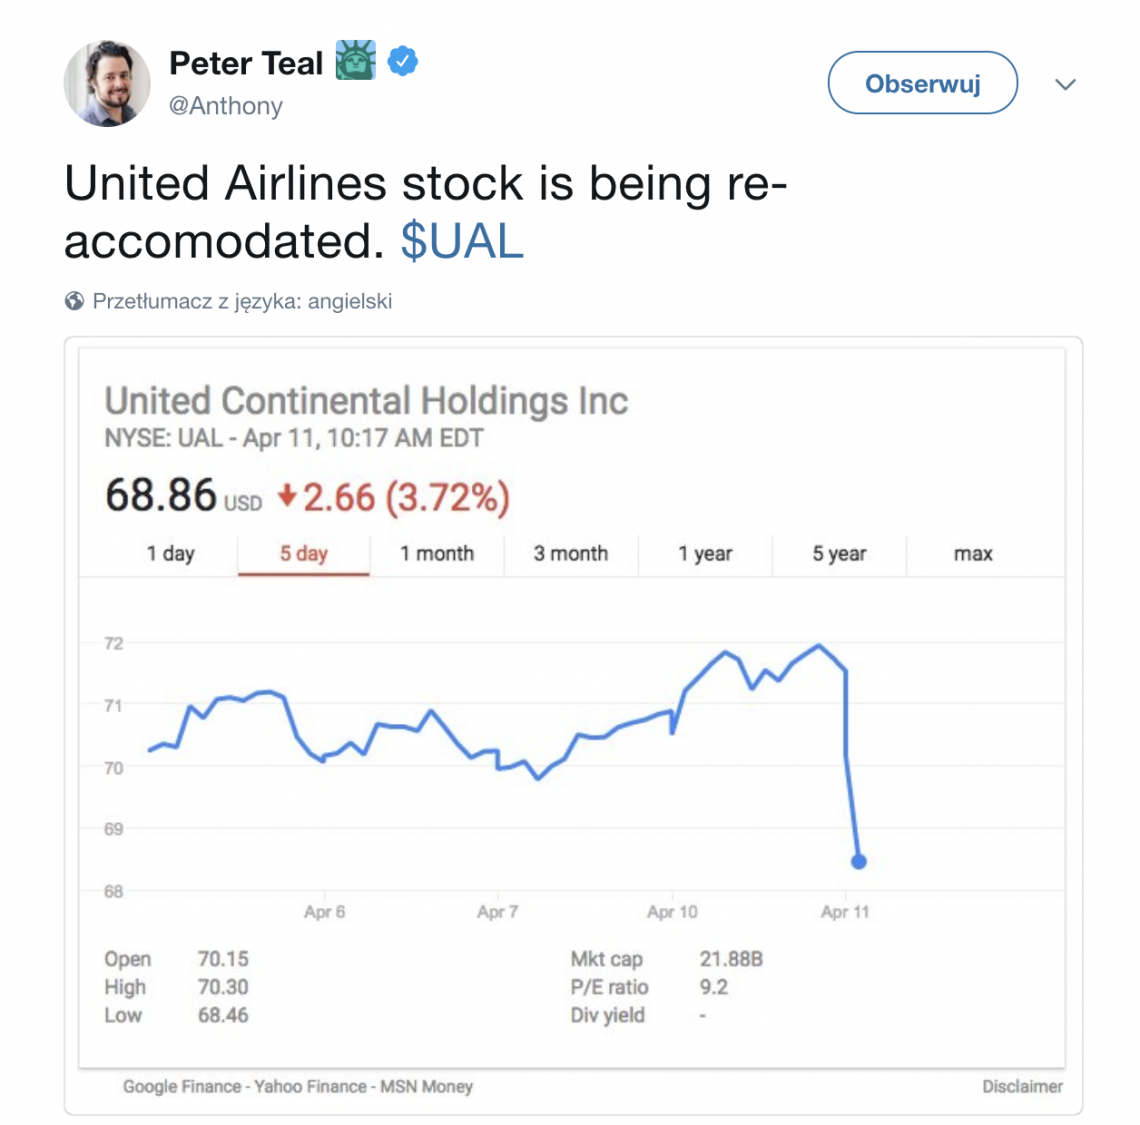 descripition of drop of shares prices of United Airlines after one of the passengers was dragged out of the plane